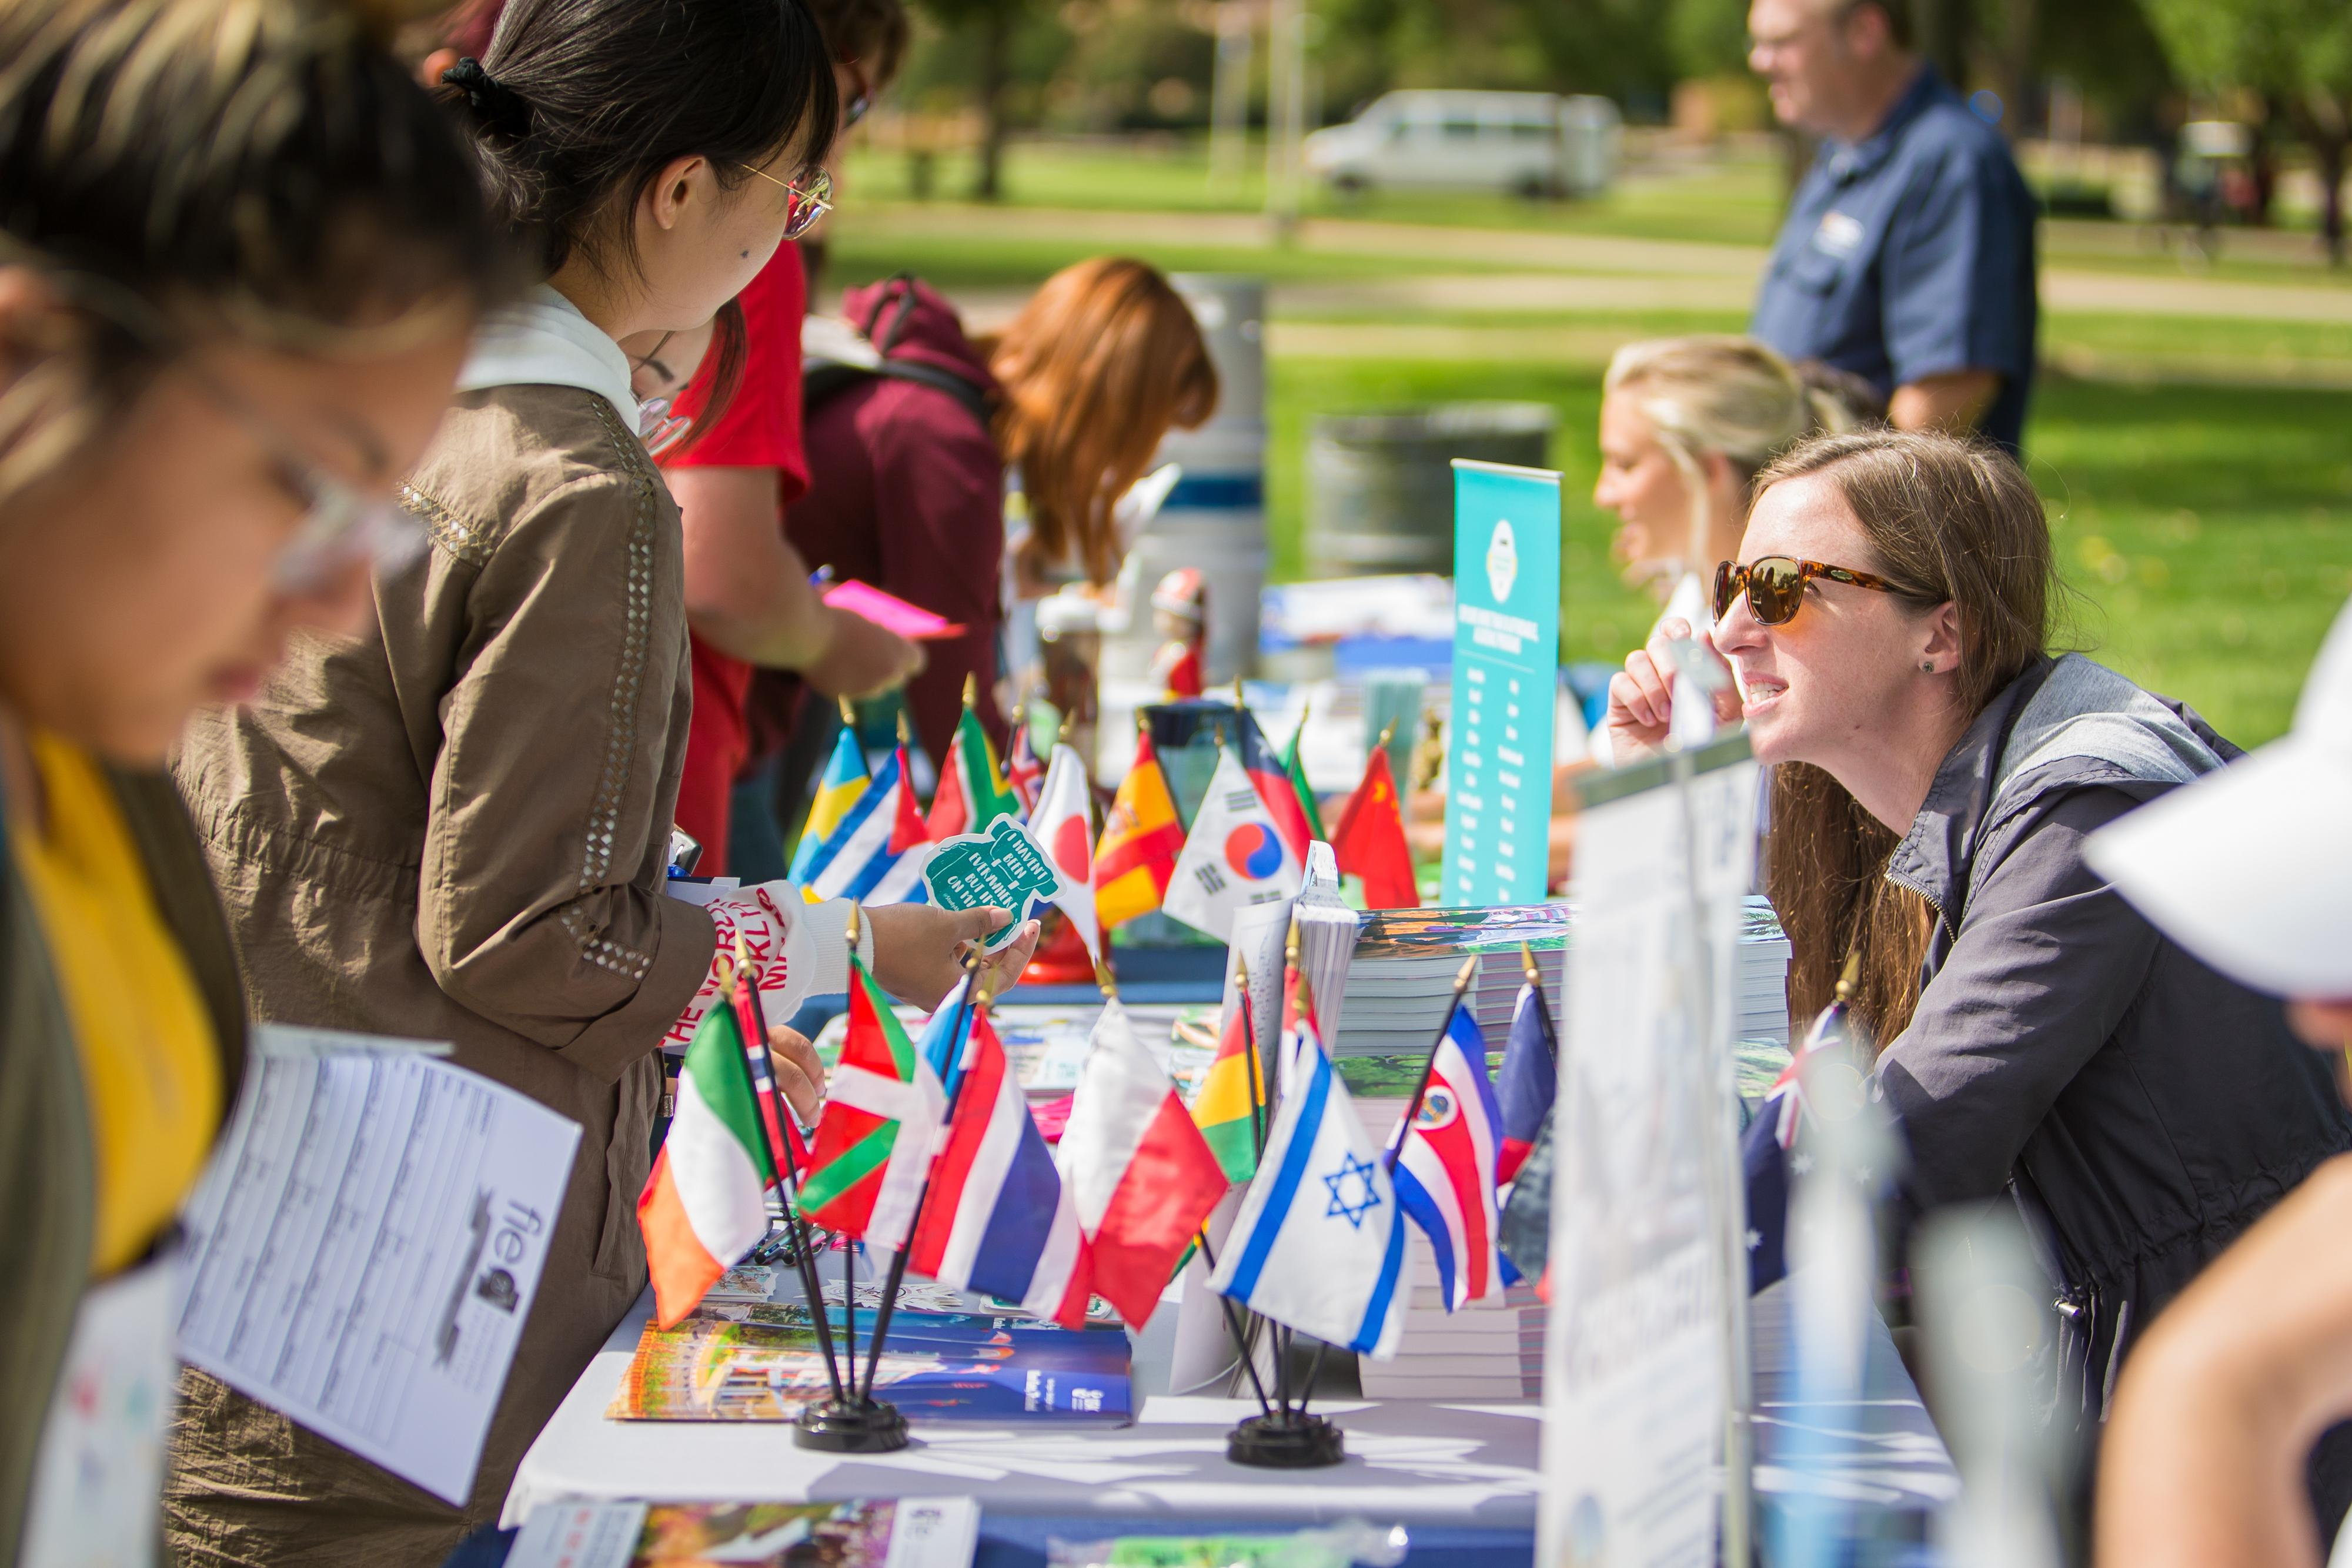 All the tables at the study abroad exchange/cultural fair